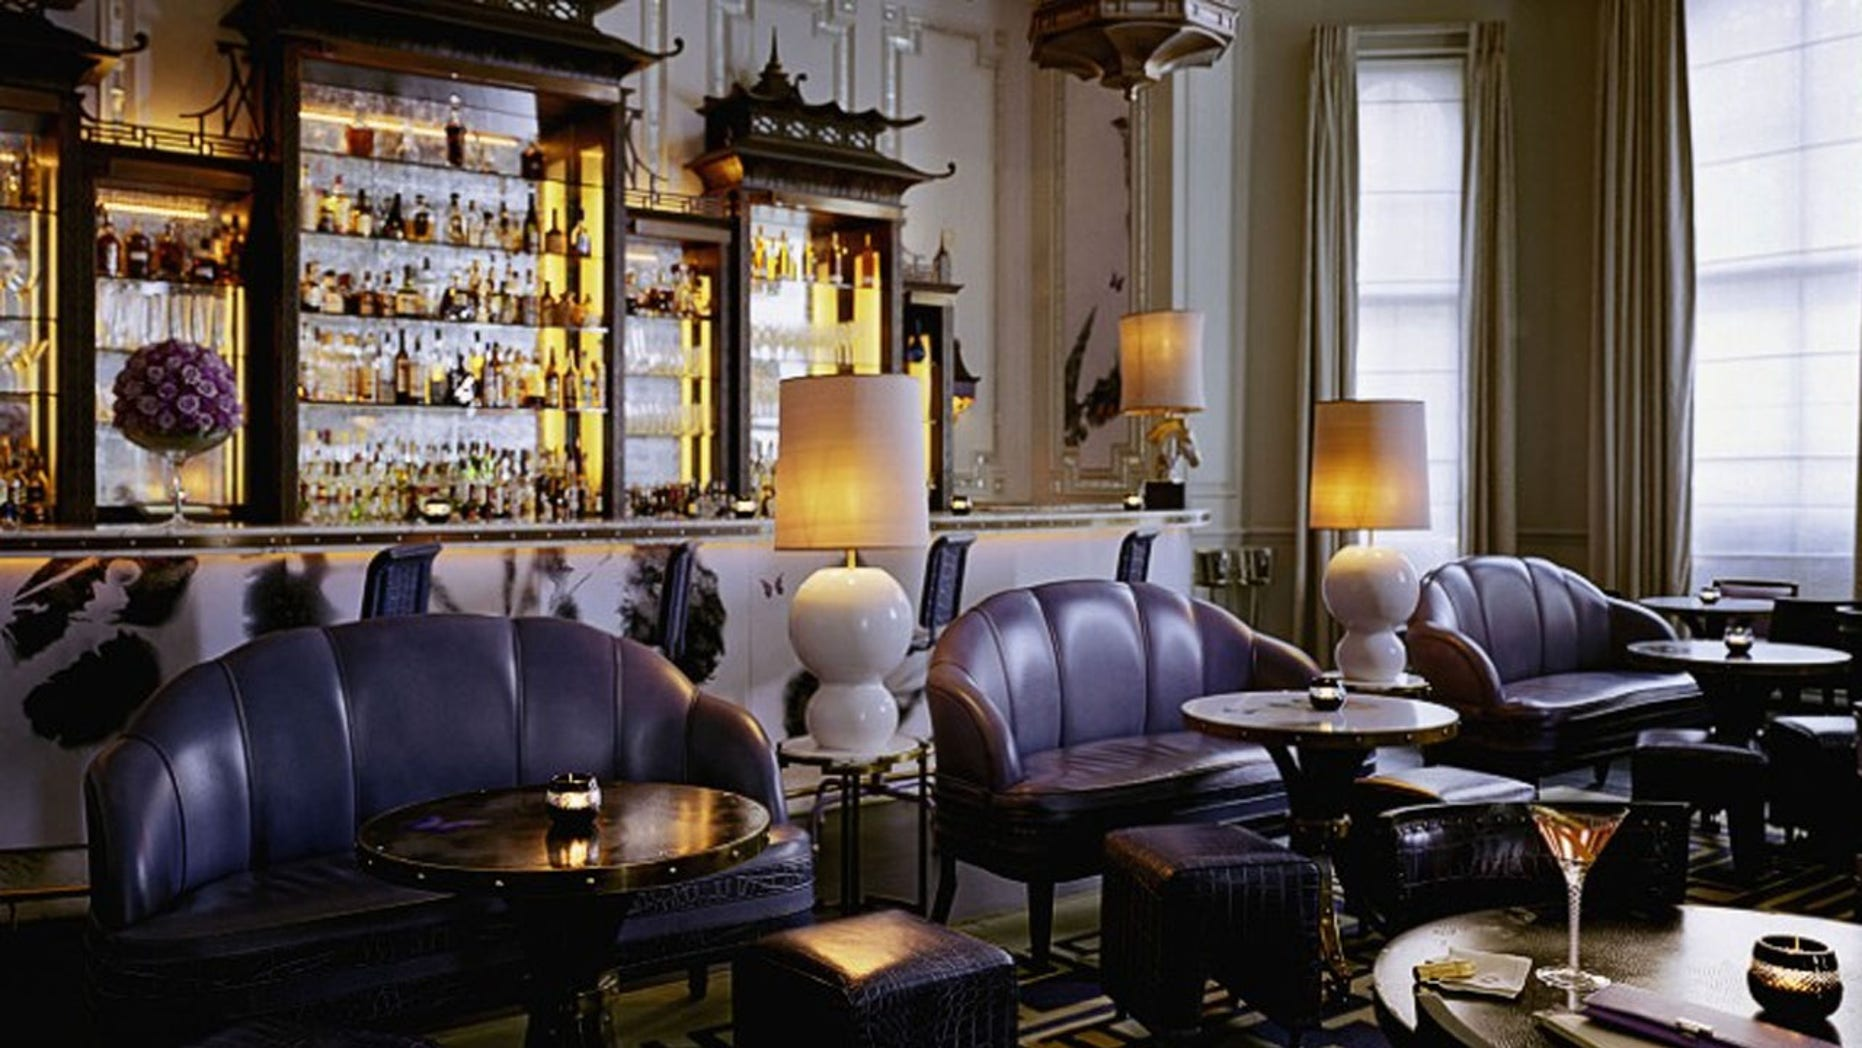 Artesian in London has won the top spot at Drinks International's annual competition.